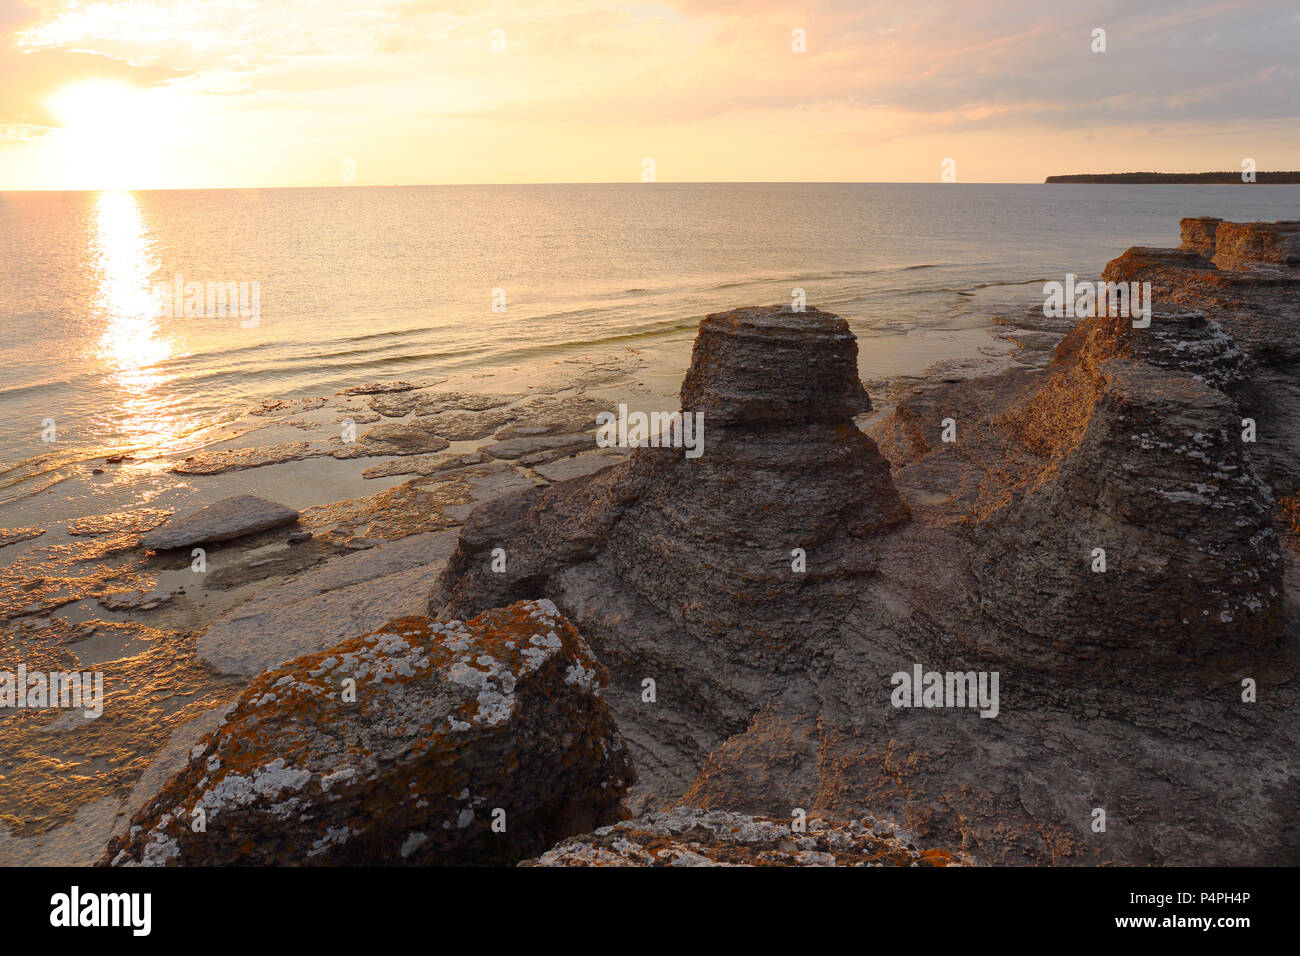 sea-stacks-at-byrum-land-sweden-P4PH4P.jpg